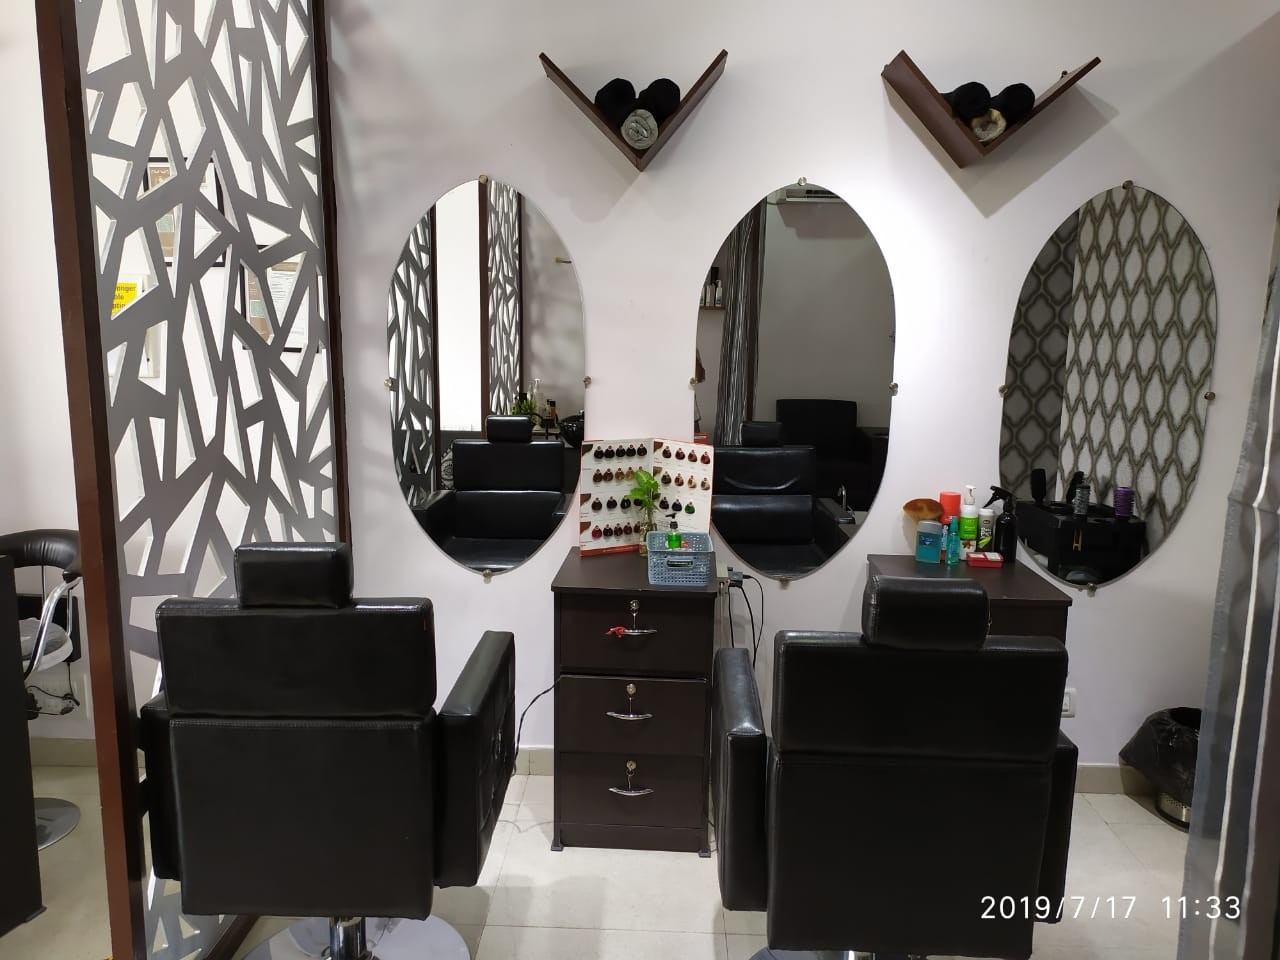 Colorfuzion Unisex Salon -GET KERATIN SERVICE IN 2899 ONLY